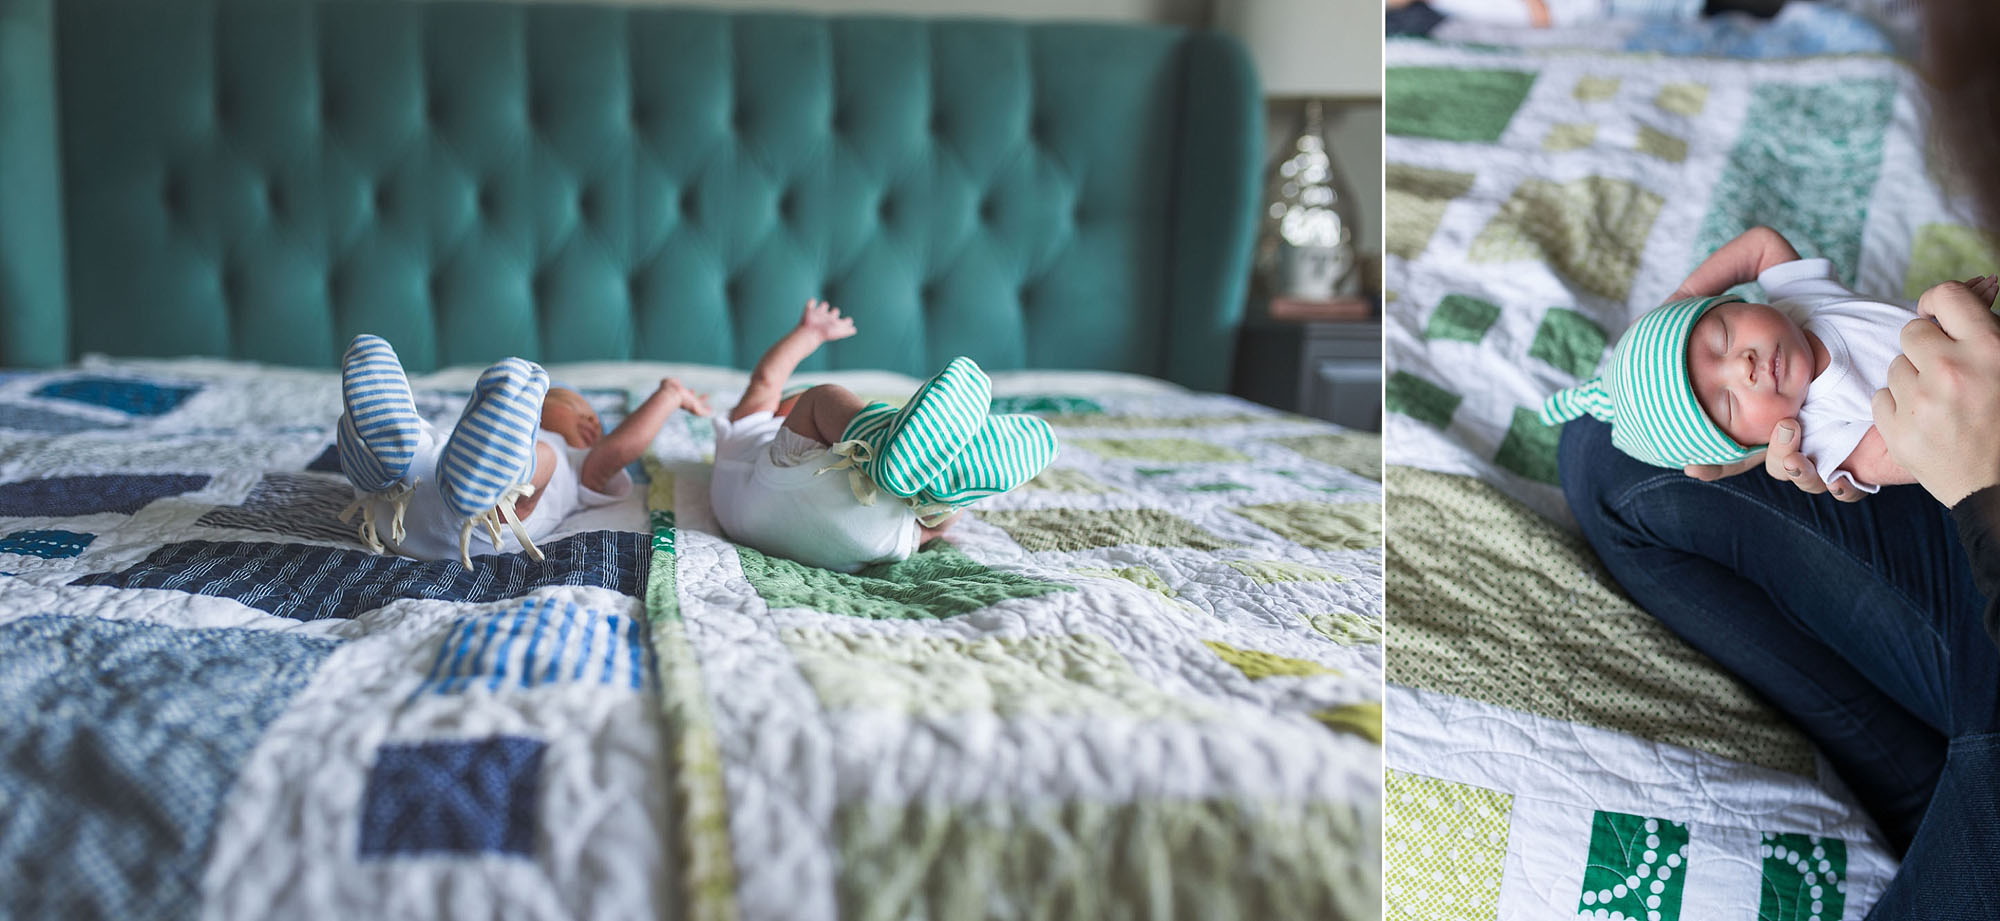 ashley vos photography seattle area lifestyle newborn photography_0136a.jpg